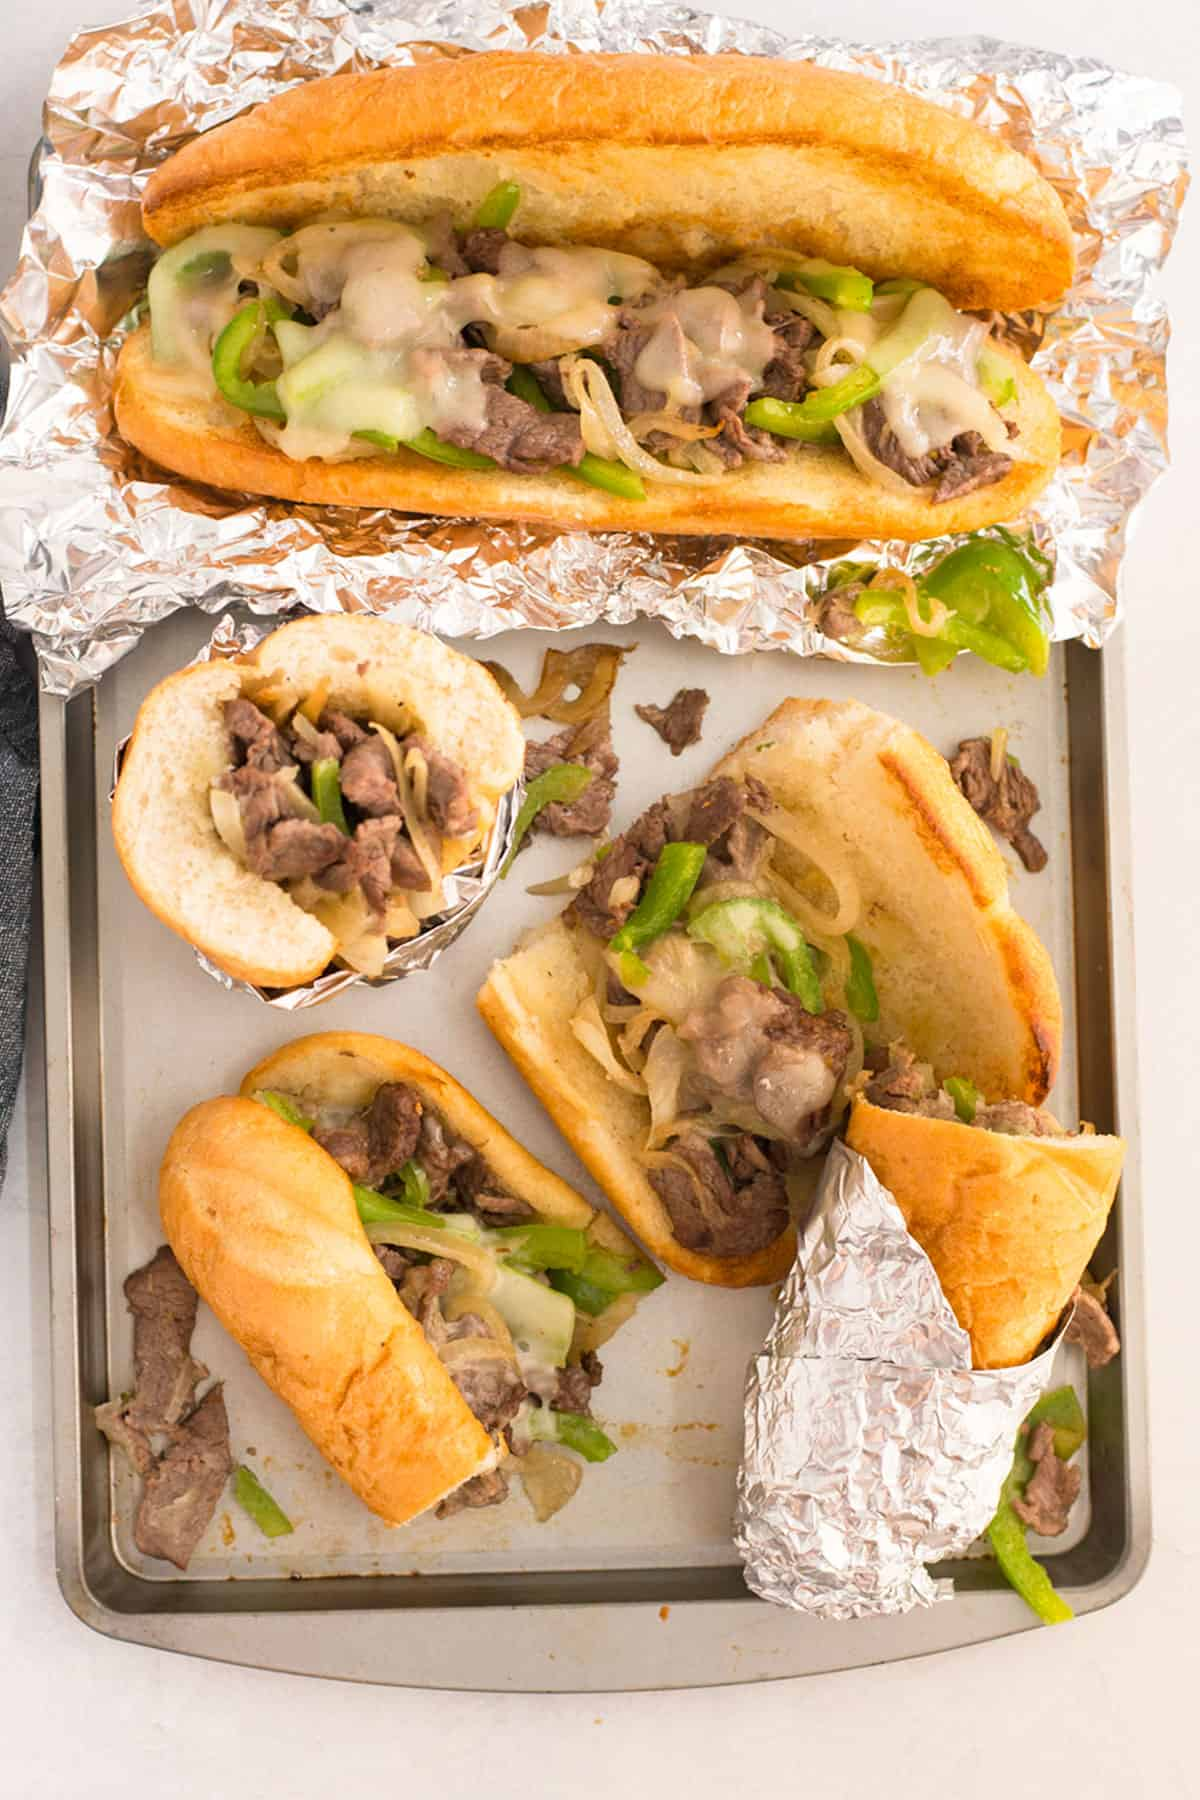 A metal pan holds a whole sandwich and four halves of a sandwich that are scattered around. Some are wrapped in foil.